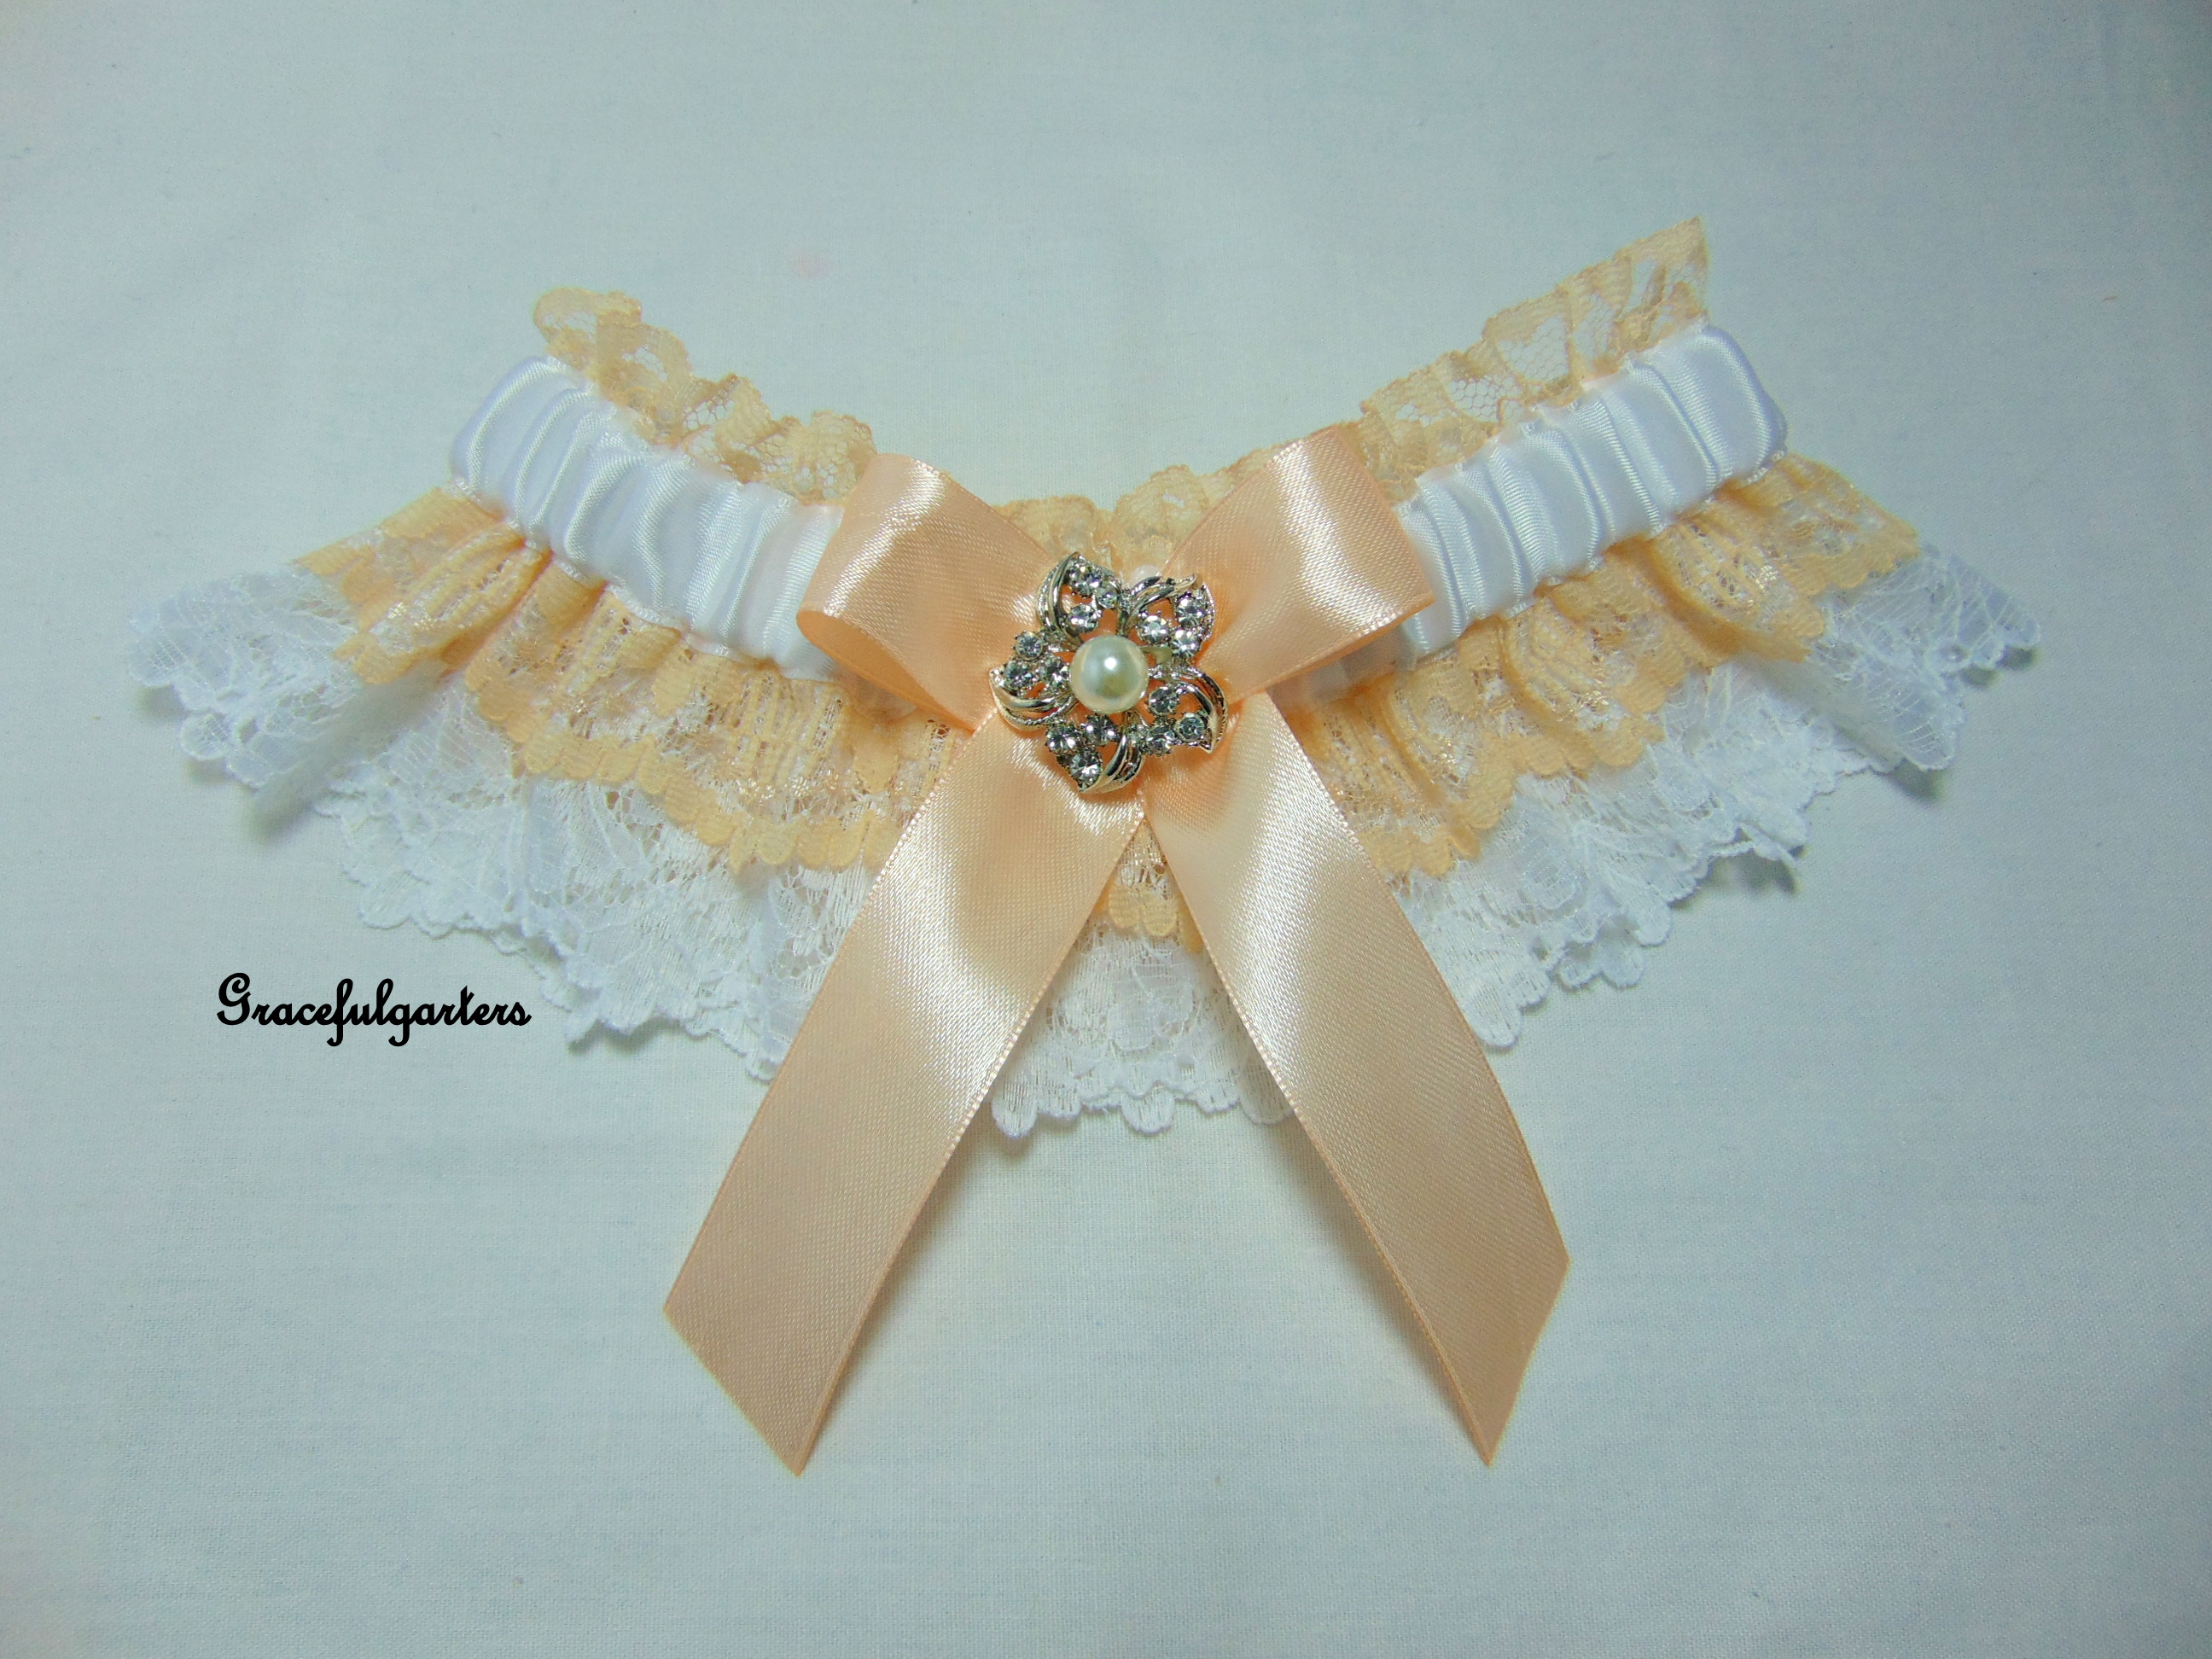 White & Peach Lace Vintage Inspired Bridal Wedding Garter